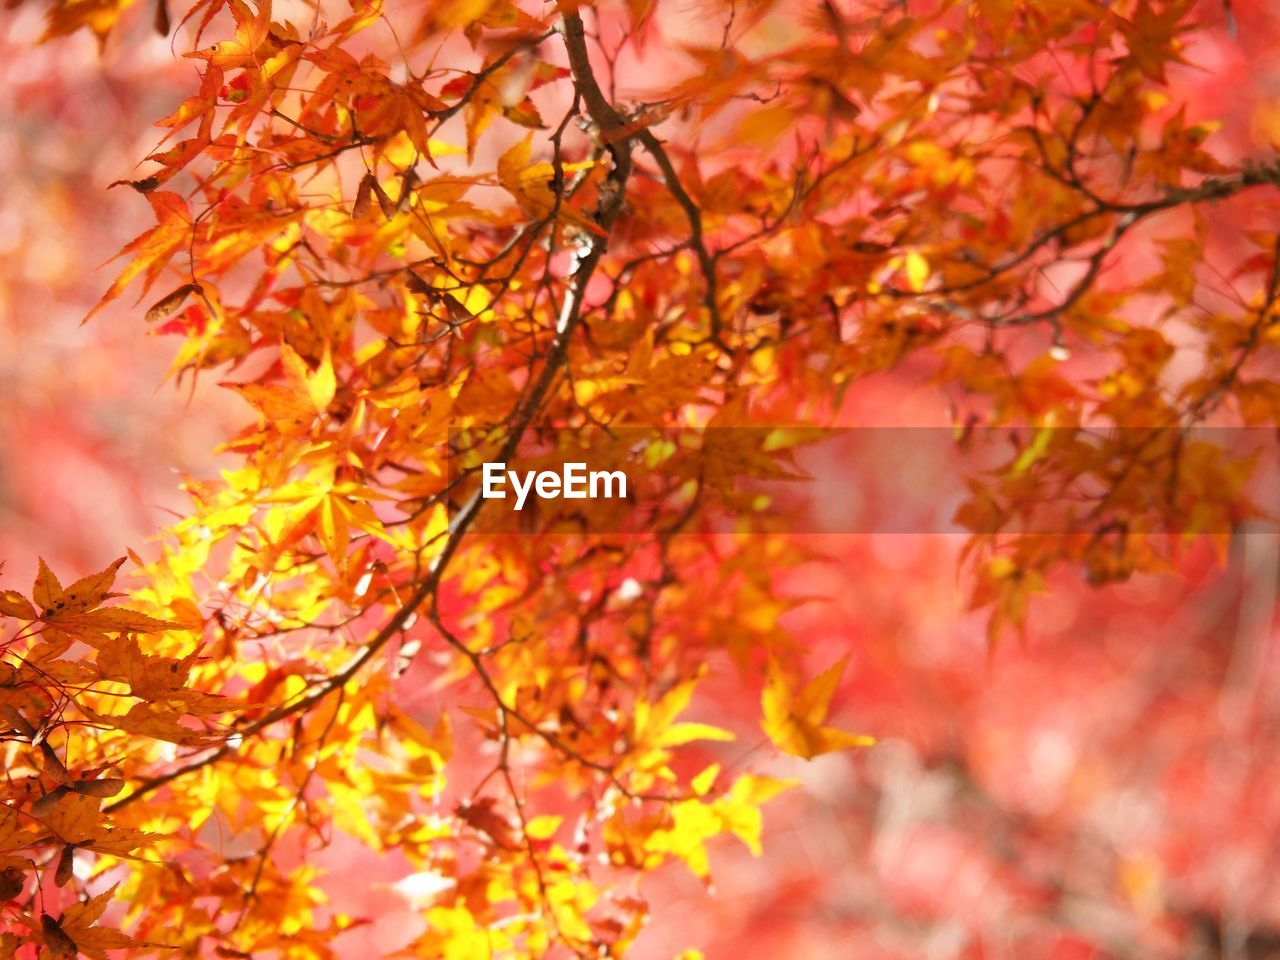 autumn, change, tree, leaf, beauty in nature, nature, growth, orange color, branch, outdoors, maple tree, day, maple leaf, no people, freshness, close-up, fragility, maple